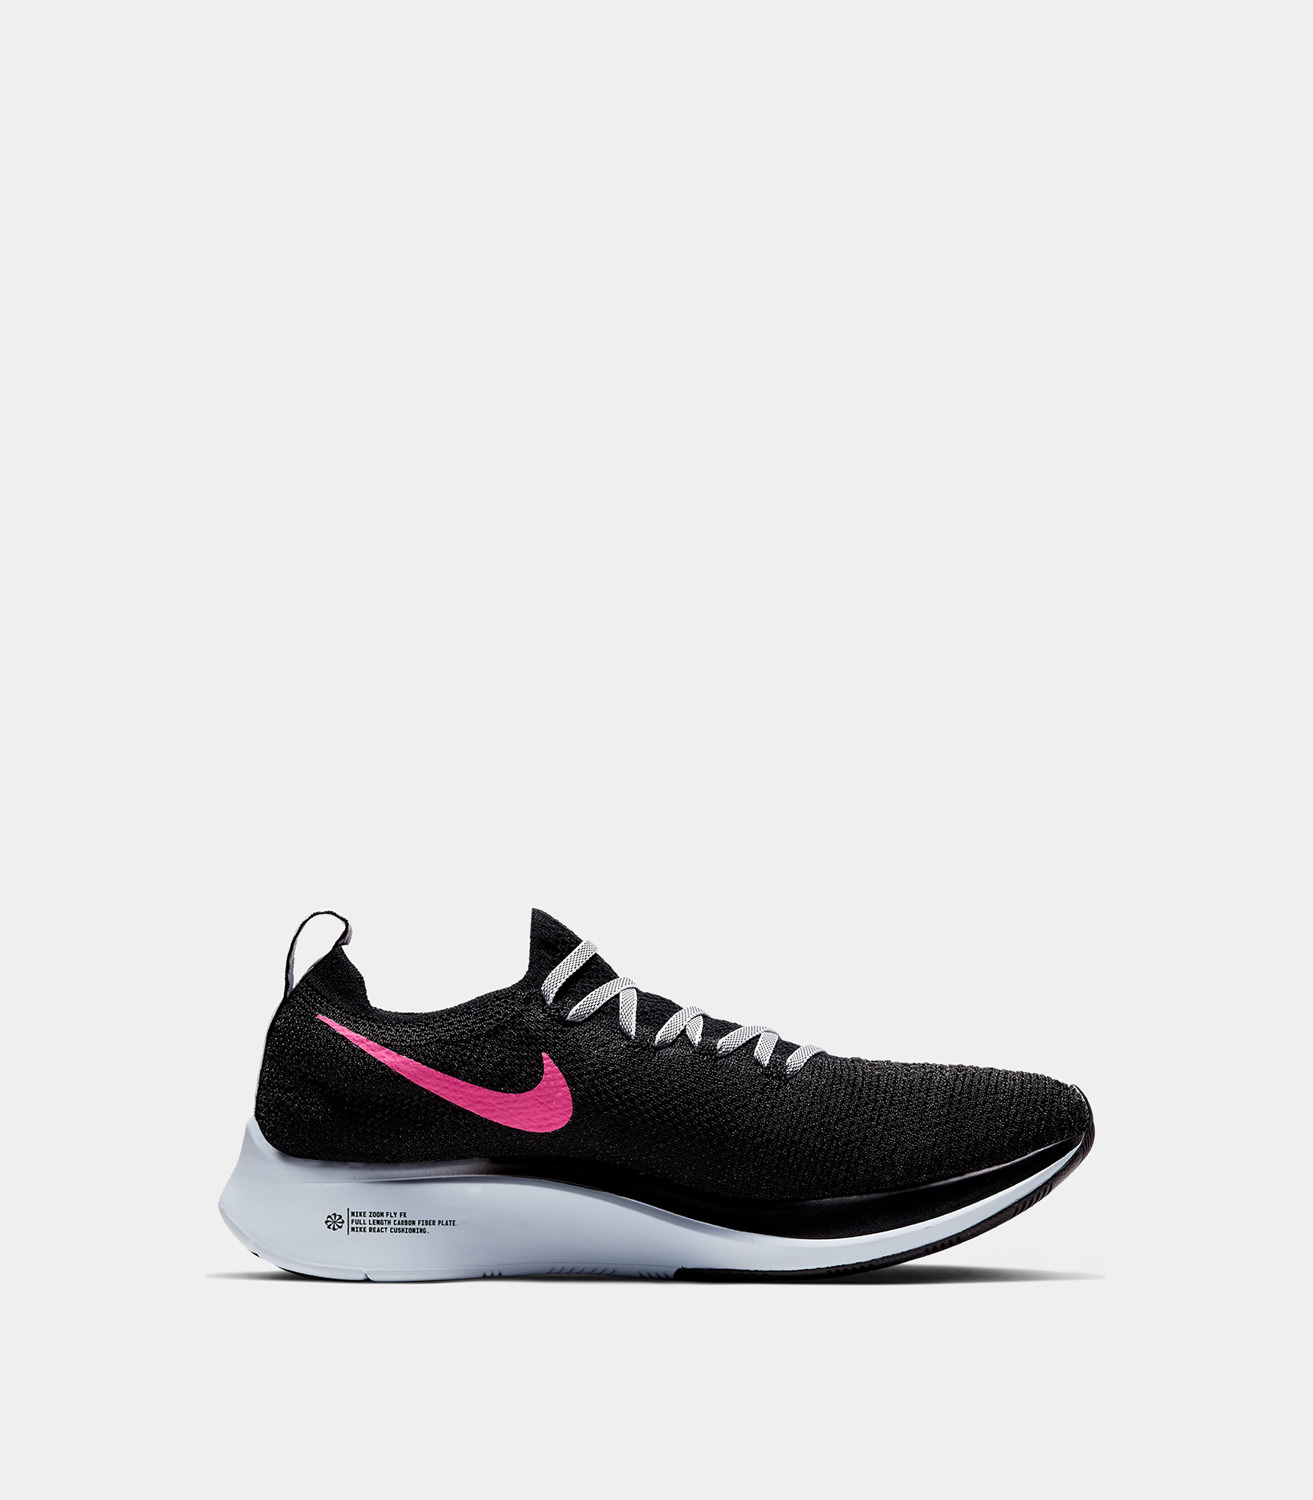 613d96f96ab02 NIKE ZOOM FLY FLYKNIT SNEAKERS COLOR BLACK